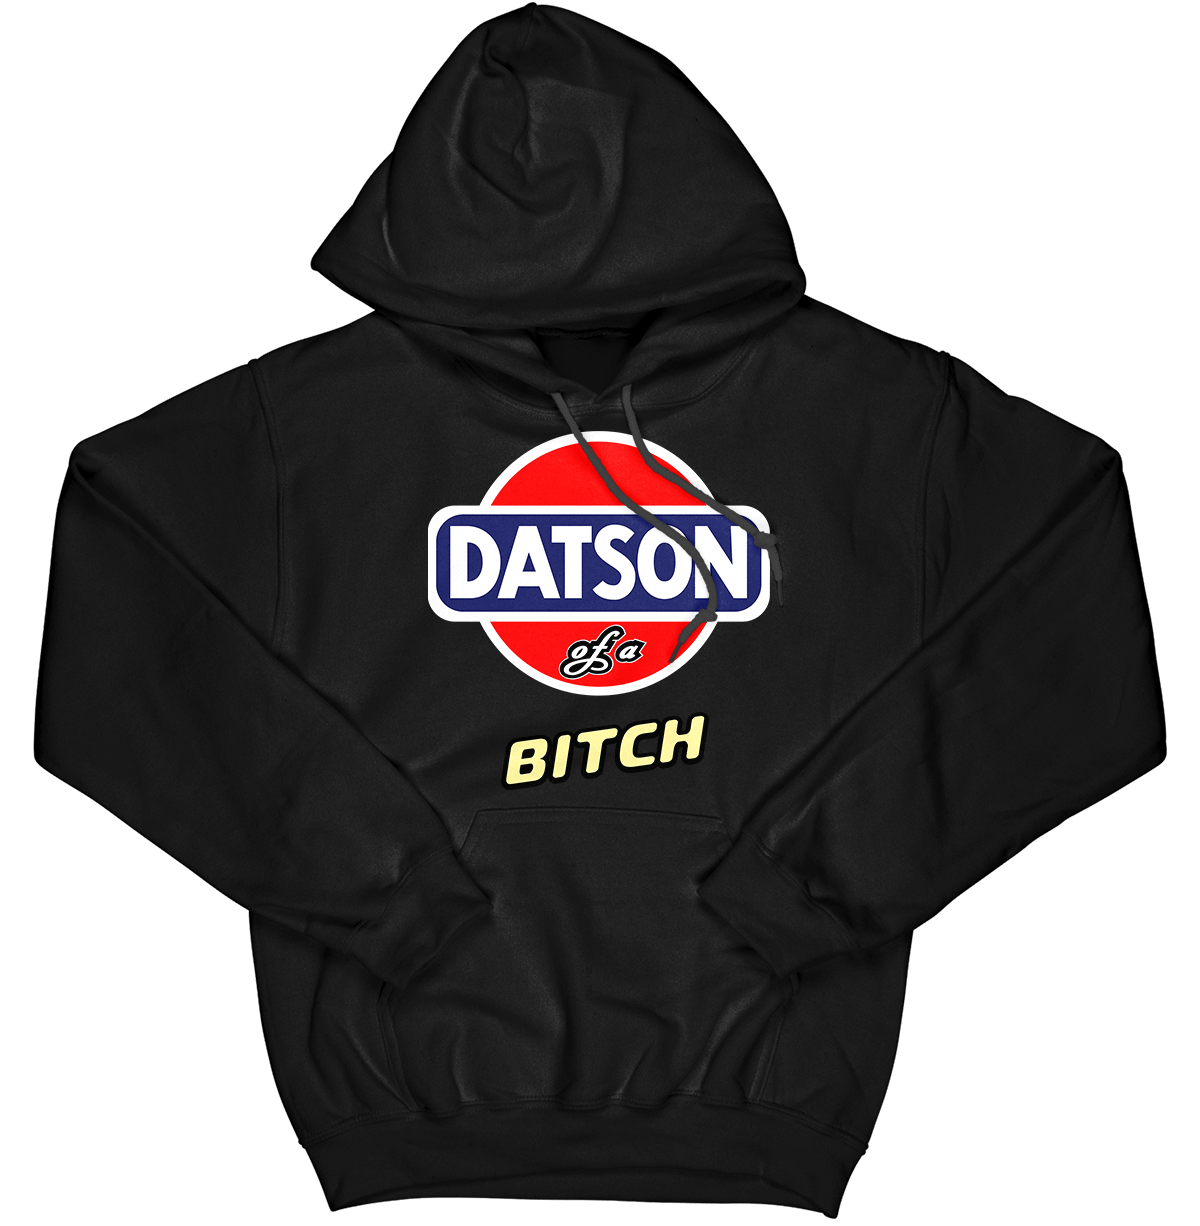 Datson of a B*tch Hoodie